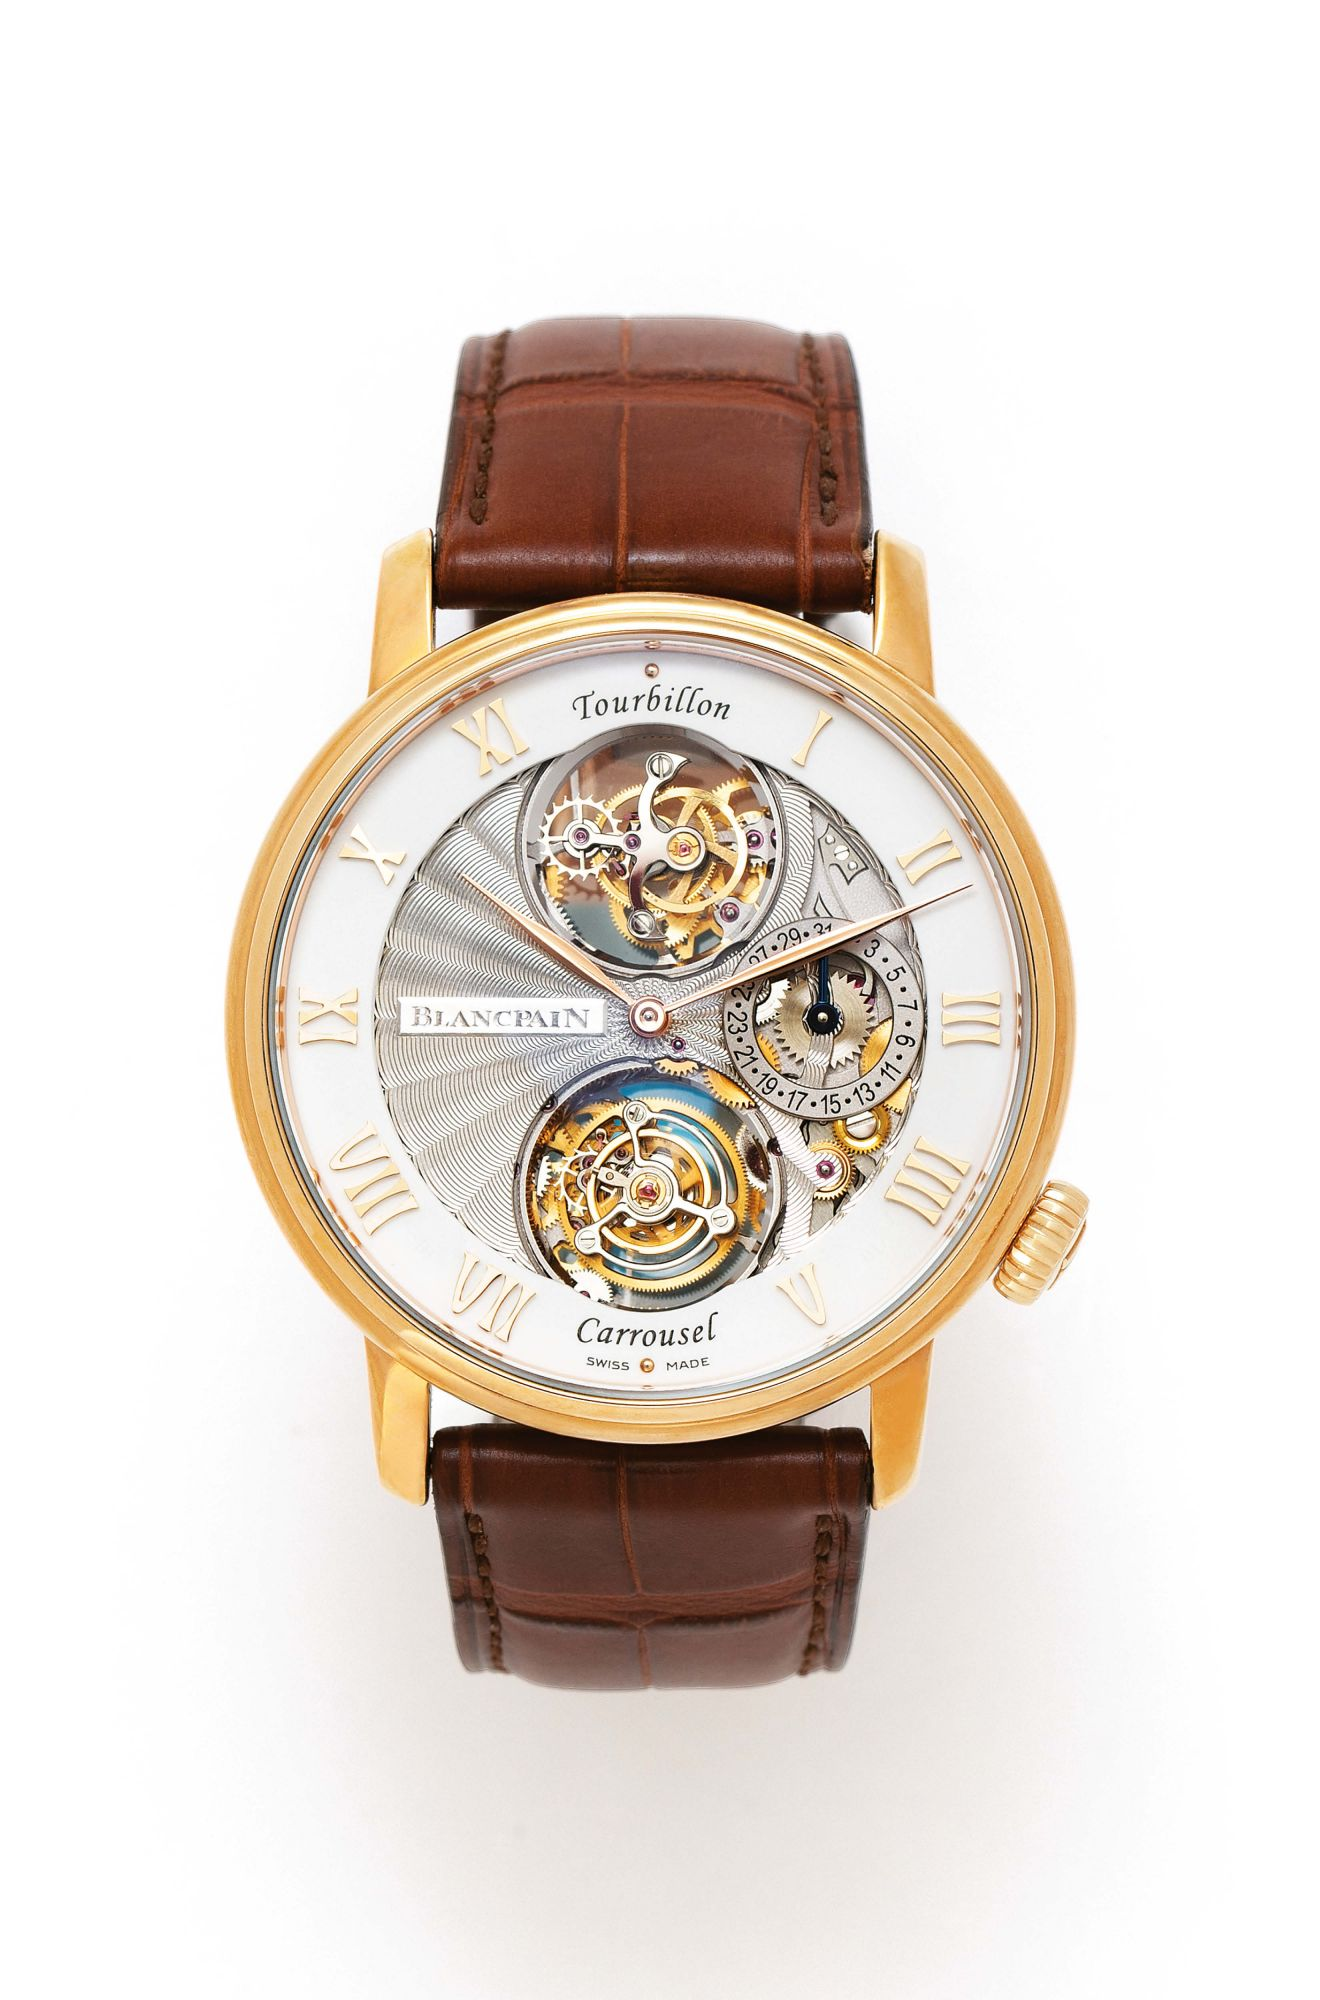 5 Things To Know About The Villeret Tourbillon Carrousel By Blancpain